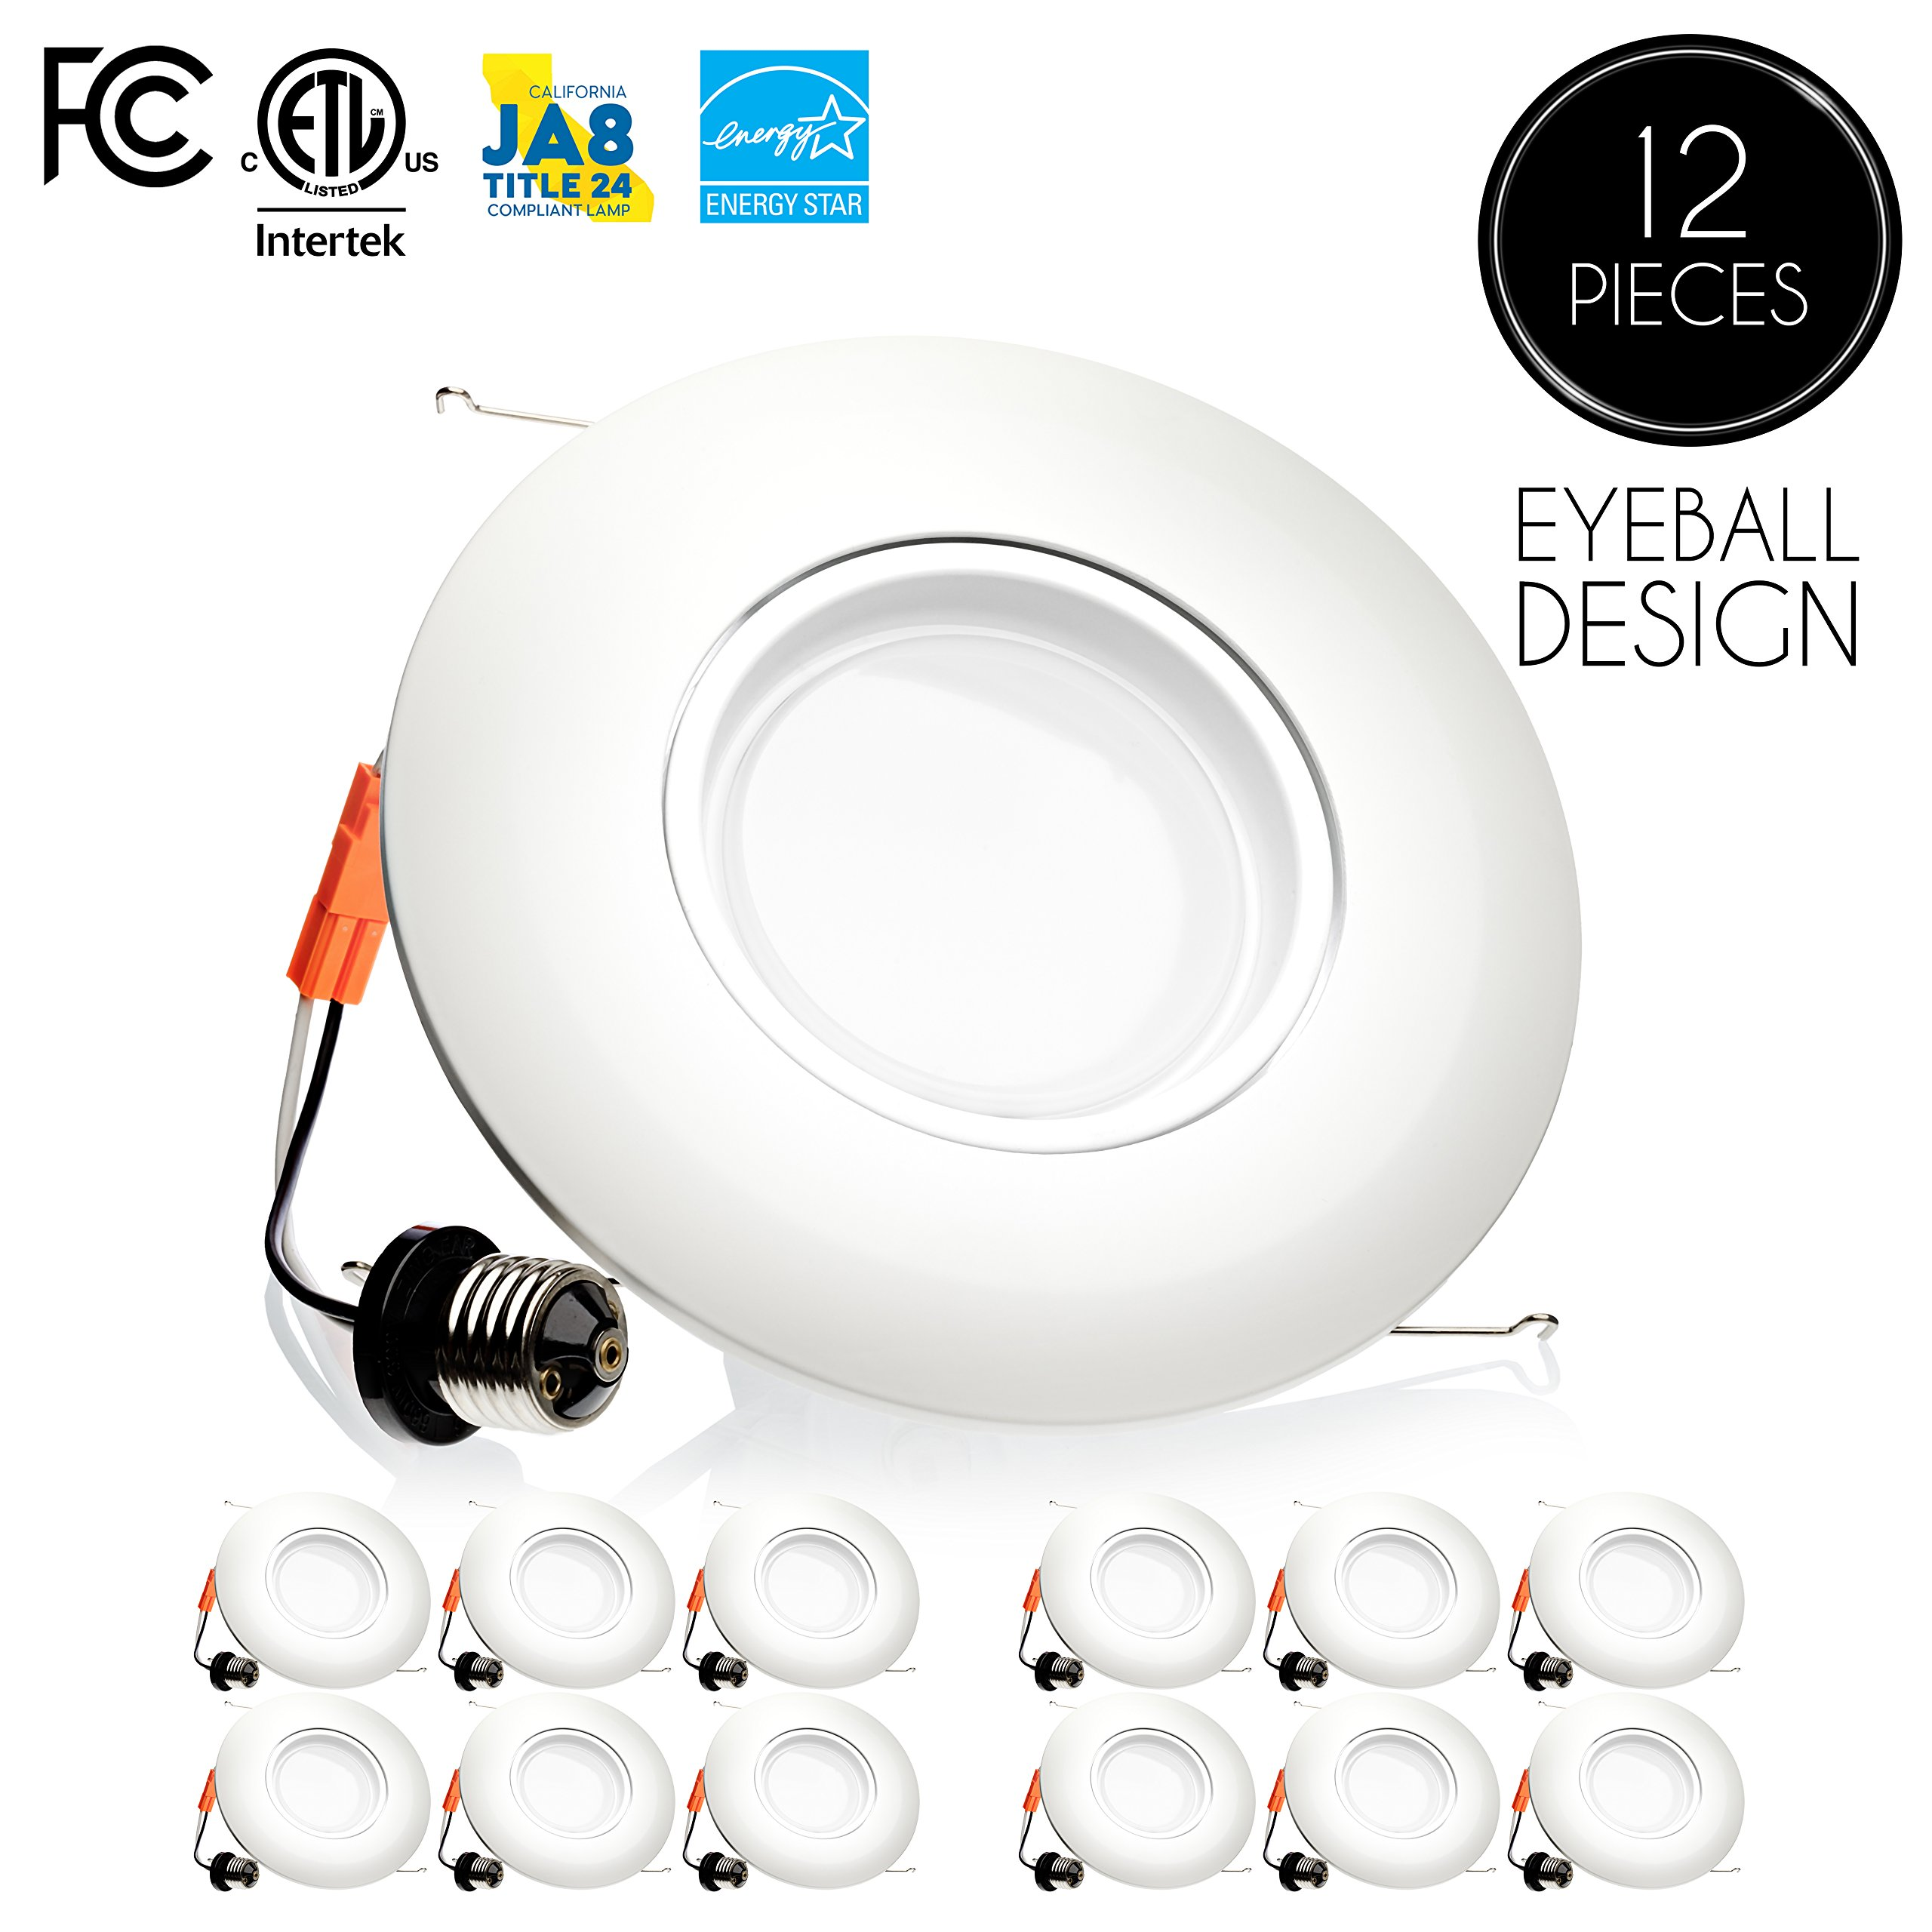 Parmida (12 Pack) 6 inch LED Adjustable Gimbal Downlight, Dimmable, 15W (120W Replacement), Rotatable Eyeball Retrofit Recessed Trim, 3000K (Soft White), 1060LM, ENERGY STAR & ETL-Listed